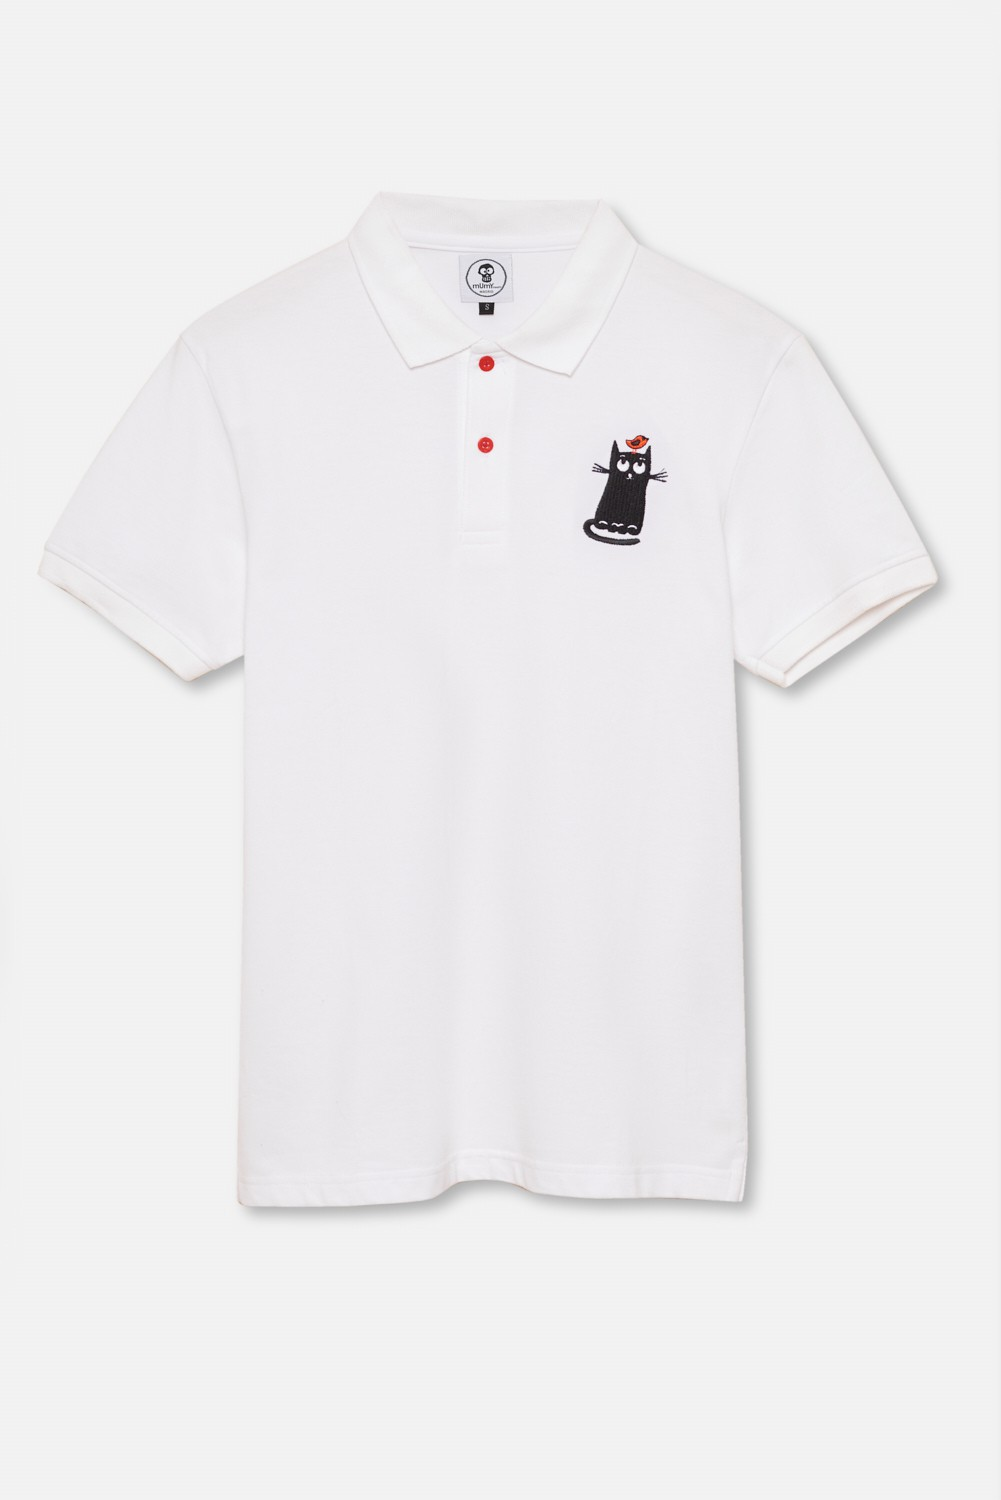 ADULT´S EMBROIDERED POLO CAT WITH BIRD ON THE HEAD IN WHITE